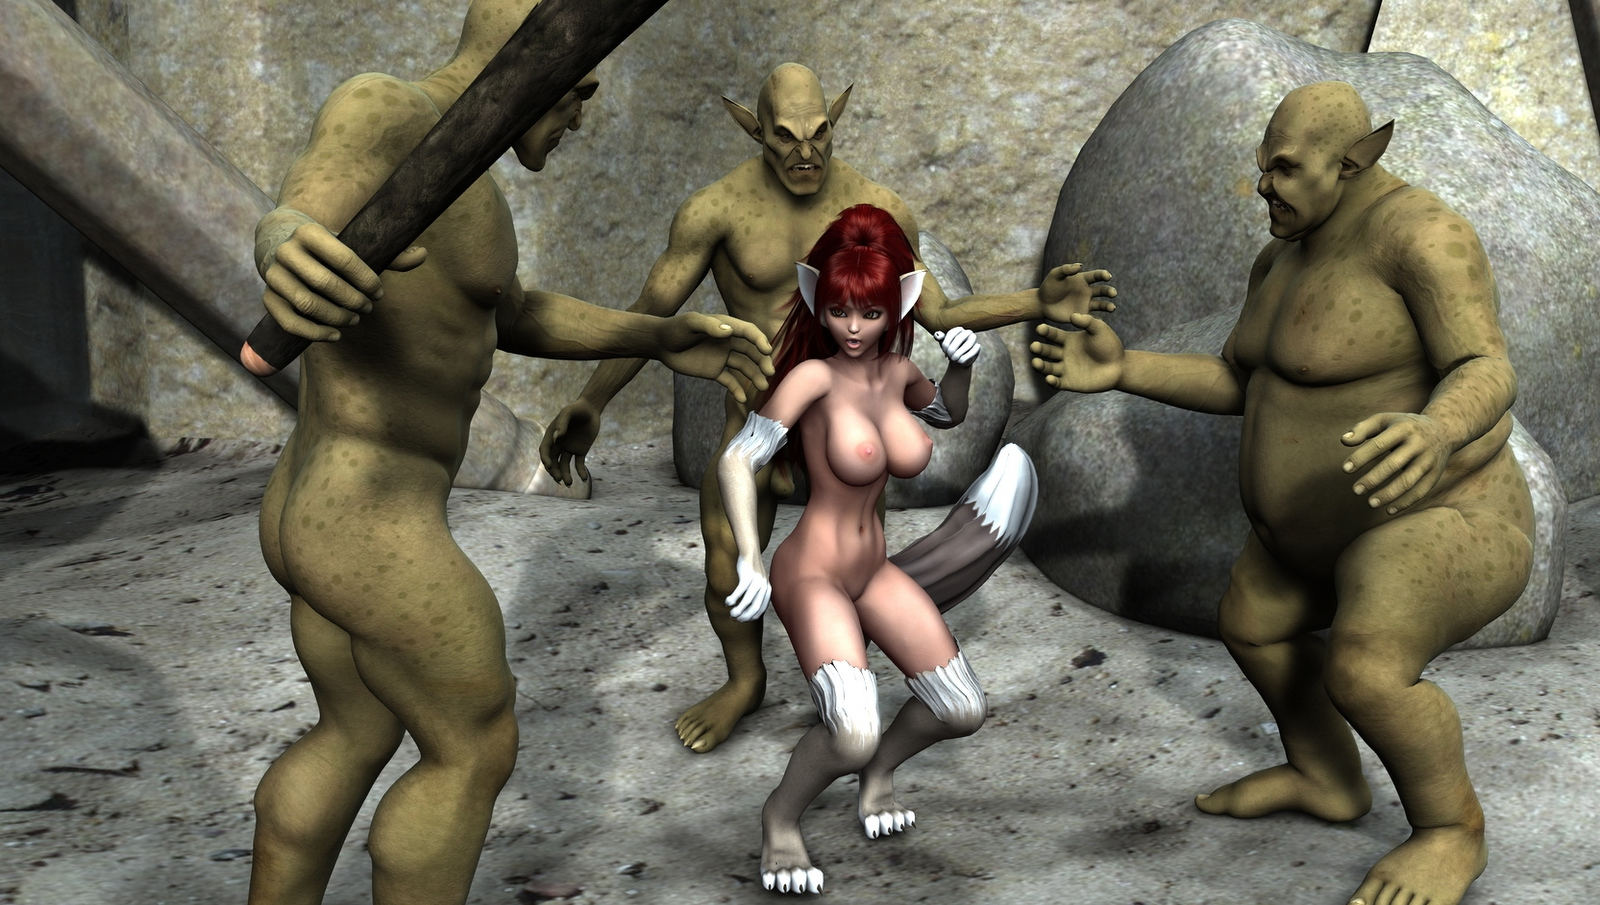 Monster cock 3d gallary erotic pic